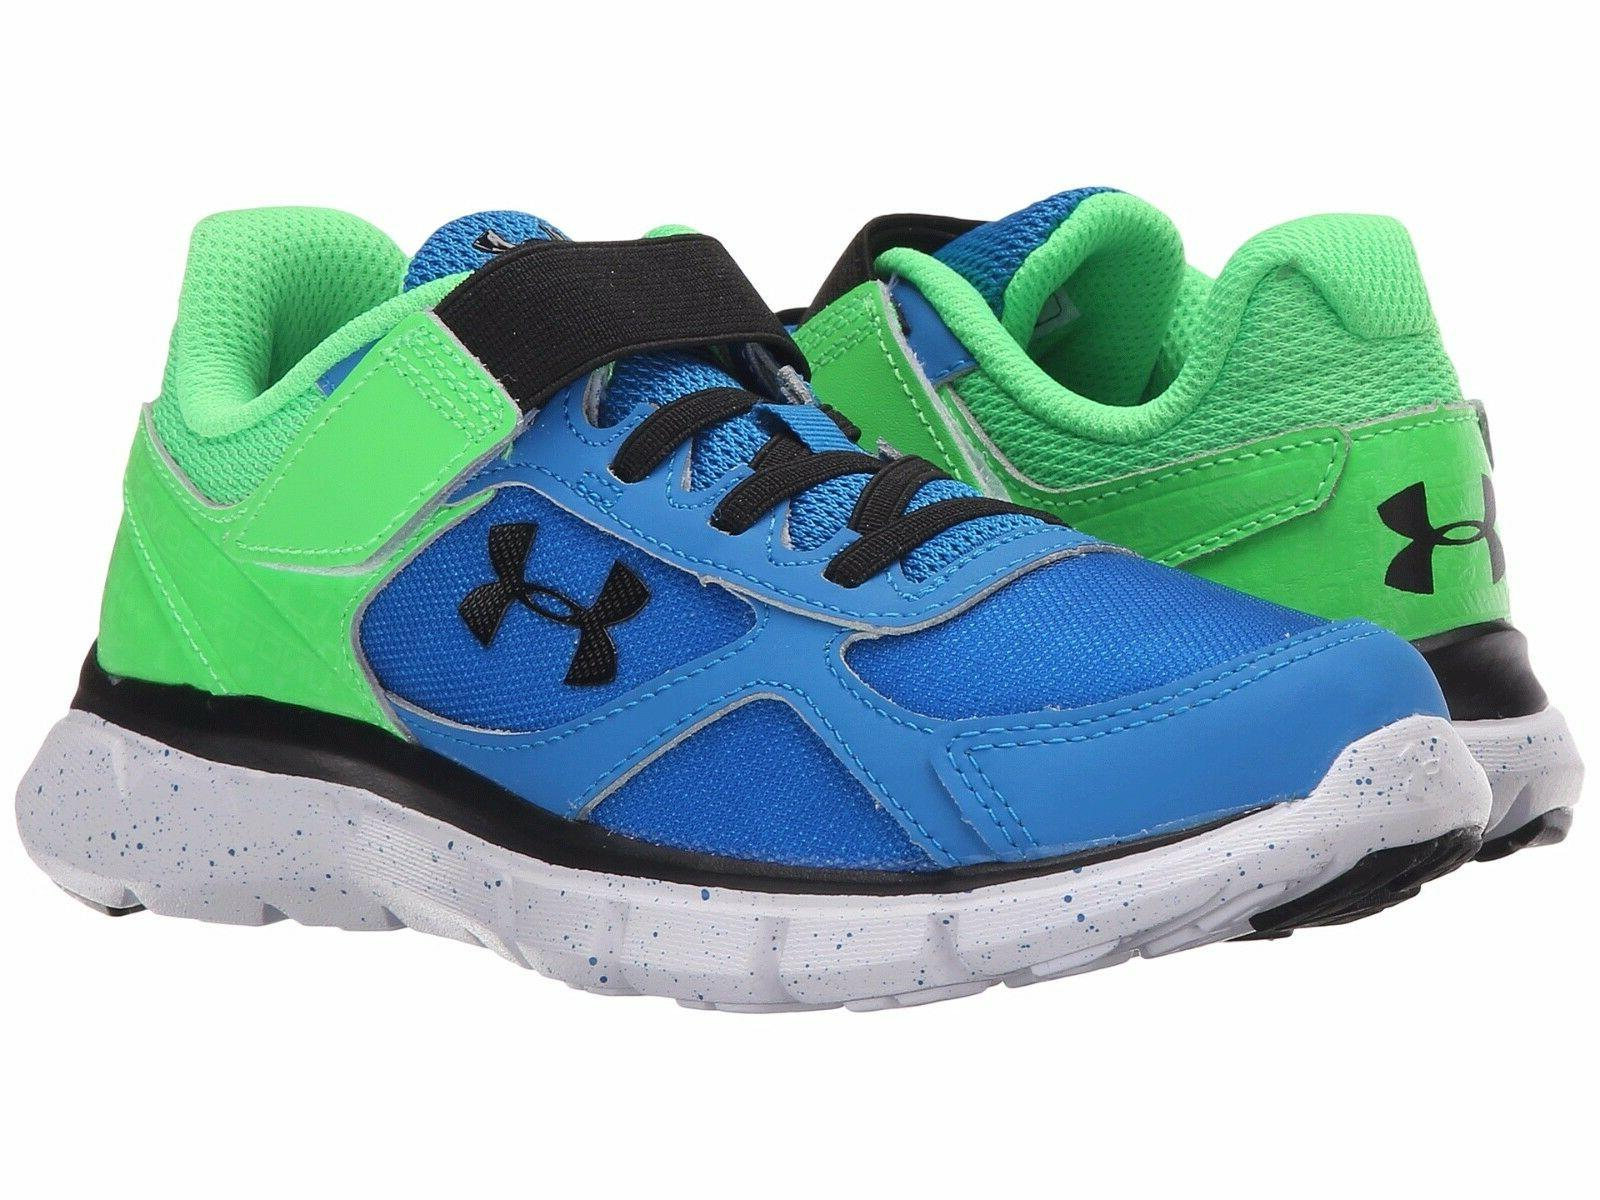 Under Armour Non Tie  Boys Sneakers Blue/Laser Green/Blk  Ch